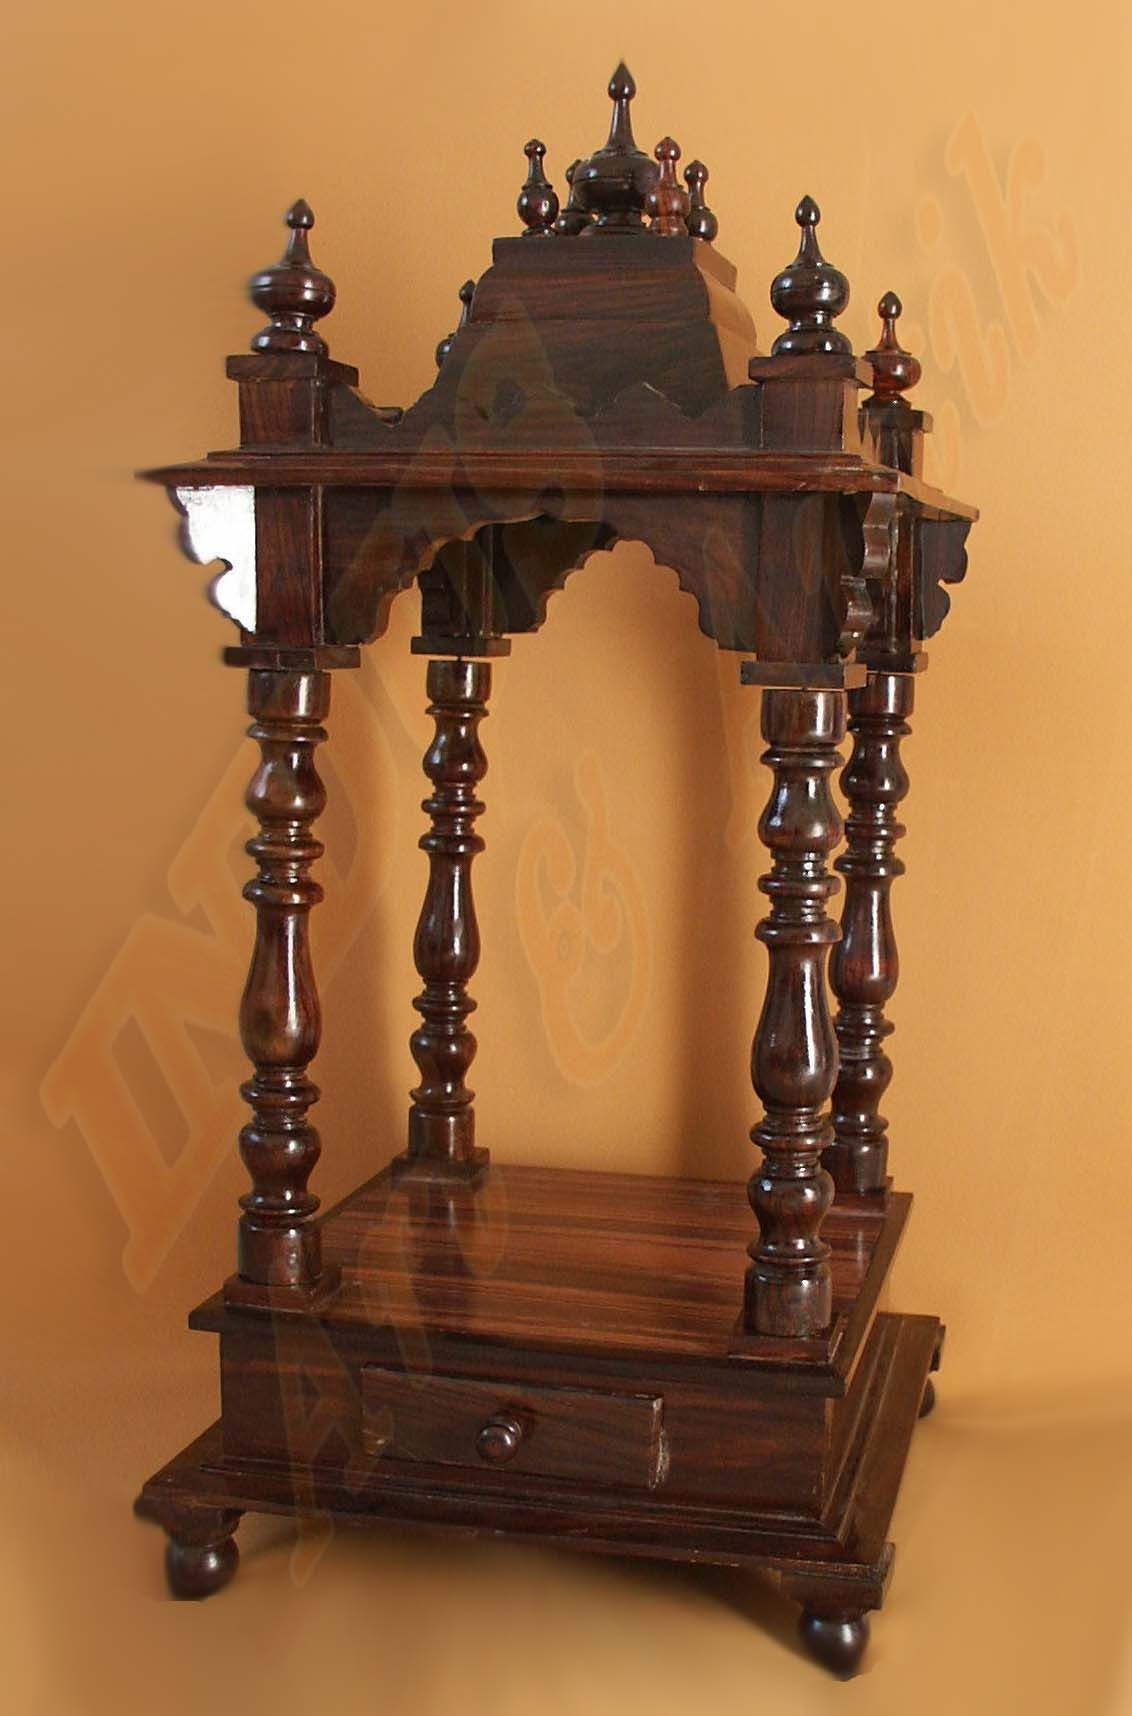 Wooden Temple Designs For Home When You Are Looking Fantastic Suggestions On Wood Working